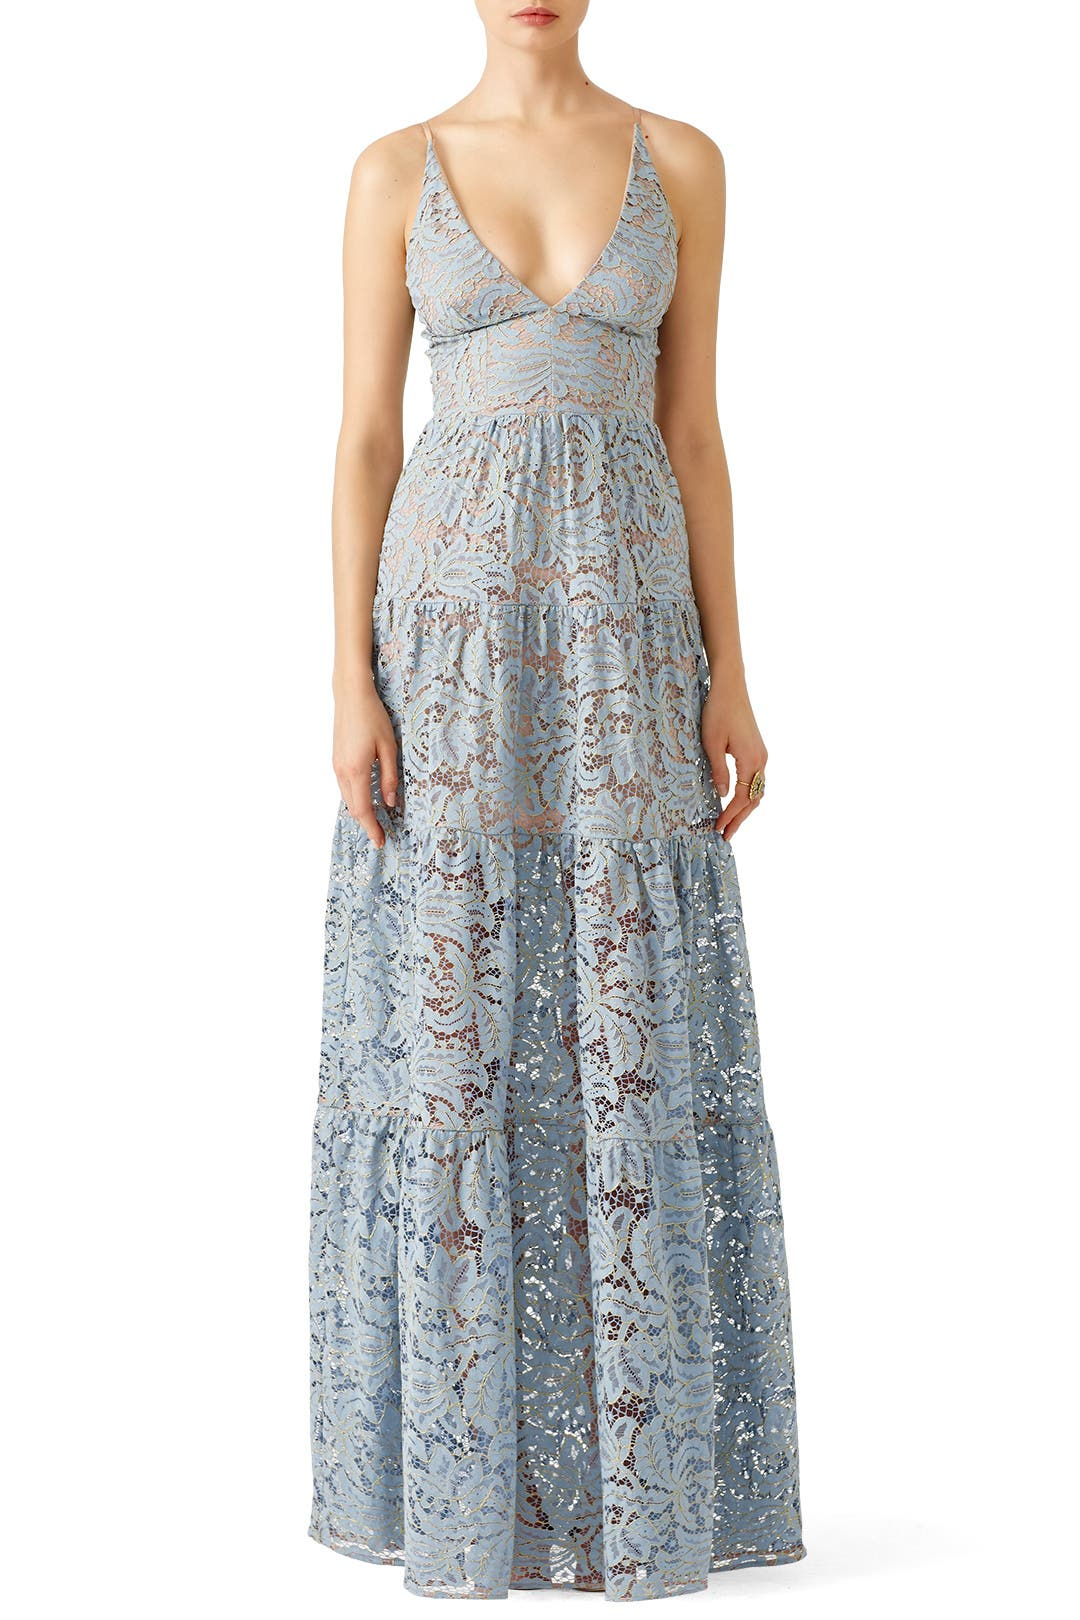 Blue Melina Lace Maxi By Dress The Population For 30